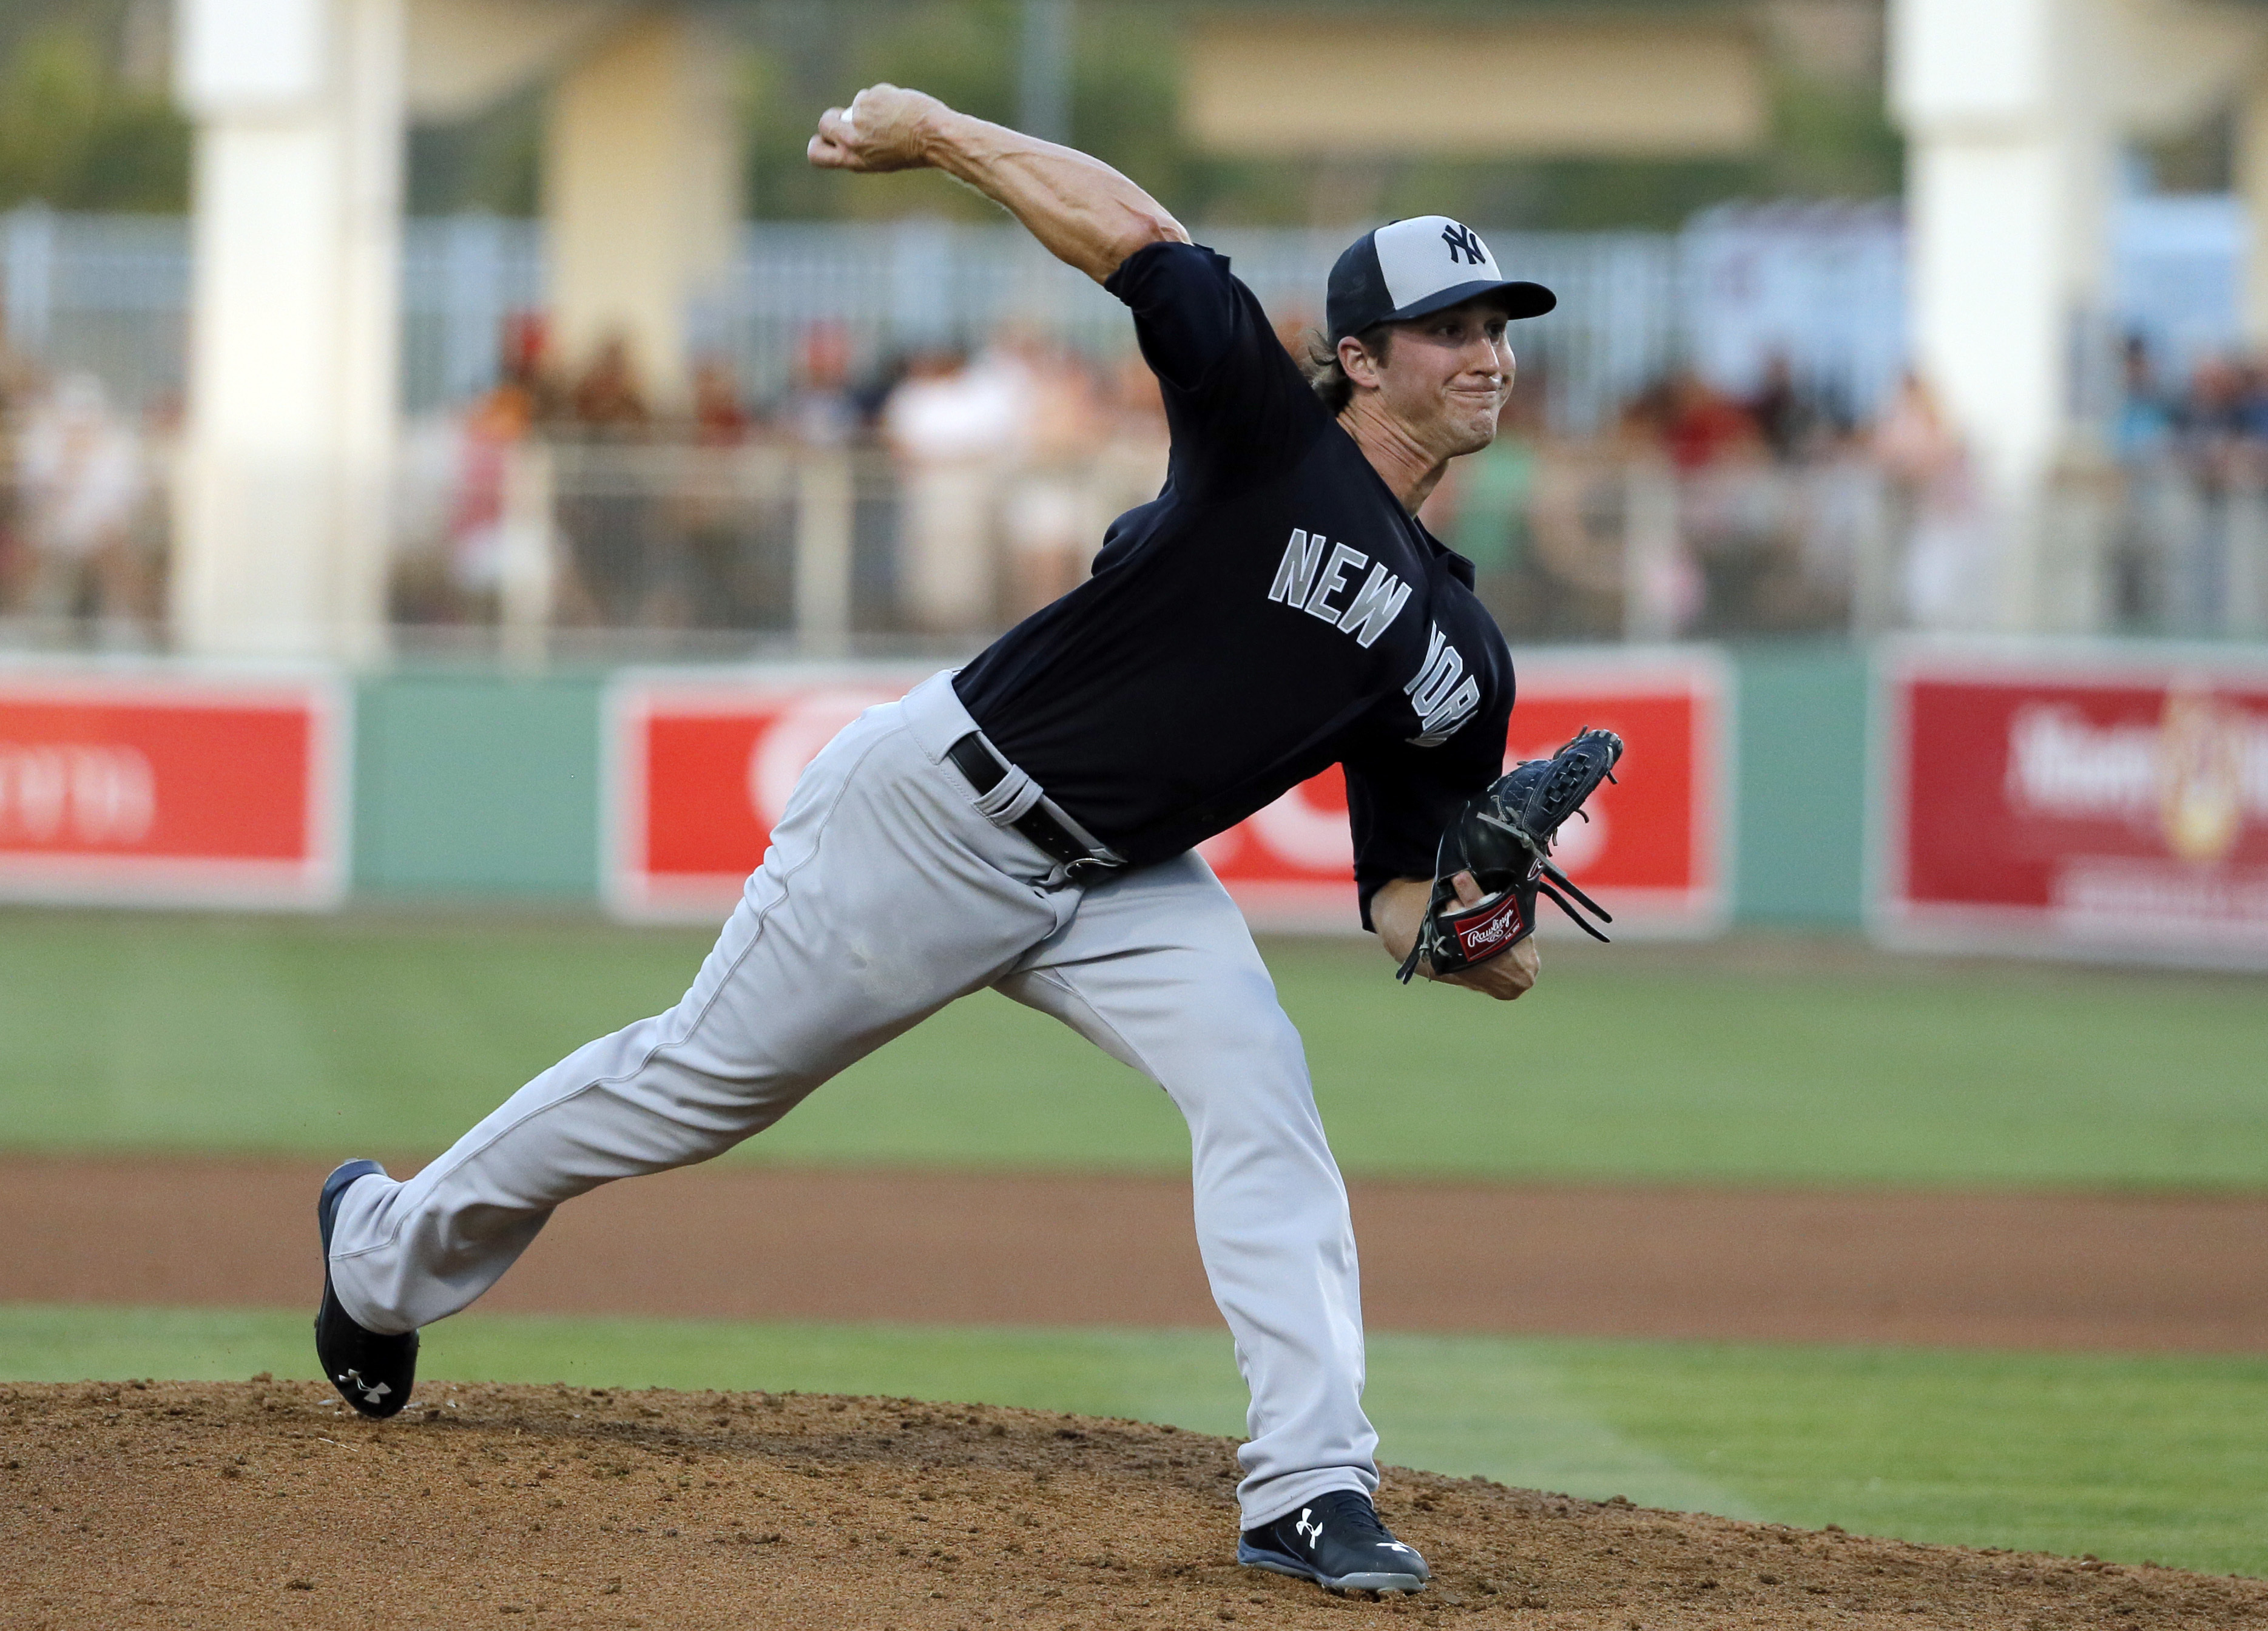 New York Yankees relief pitcher Bryan Mitchell (55) works against the Boston Red Sox in the fifth inning of a spring training baseball game, Tuesday, March 15, 2016, in Fort Myers, Fla. (AP Photo/Tony Gutierrez)